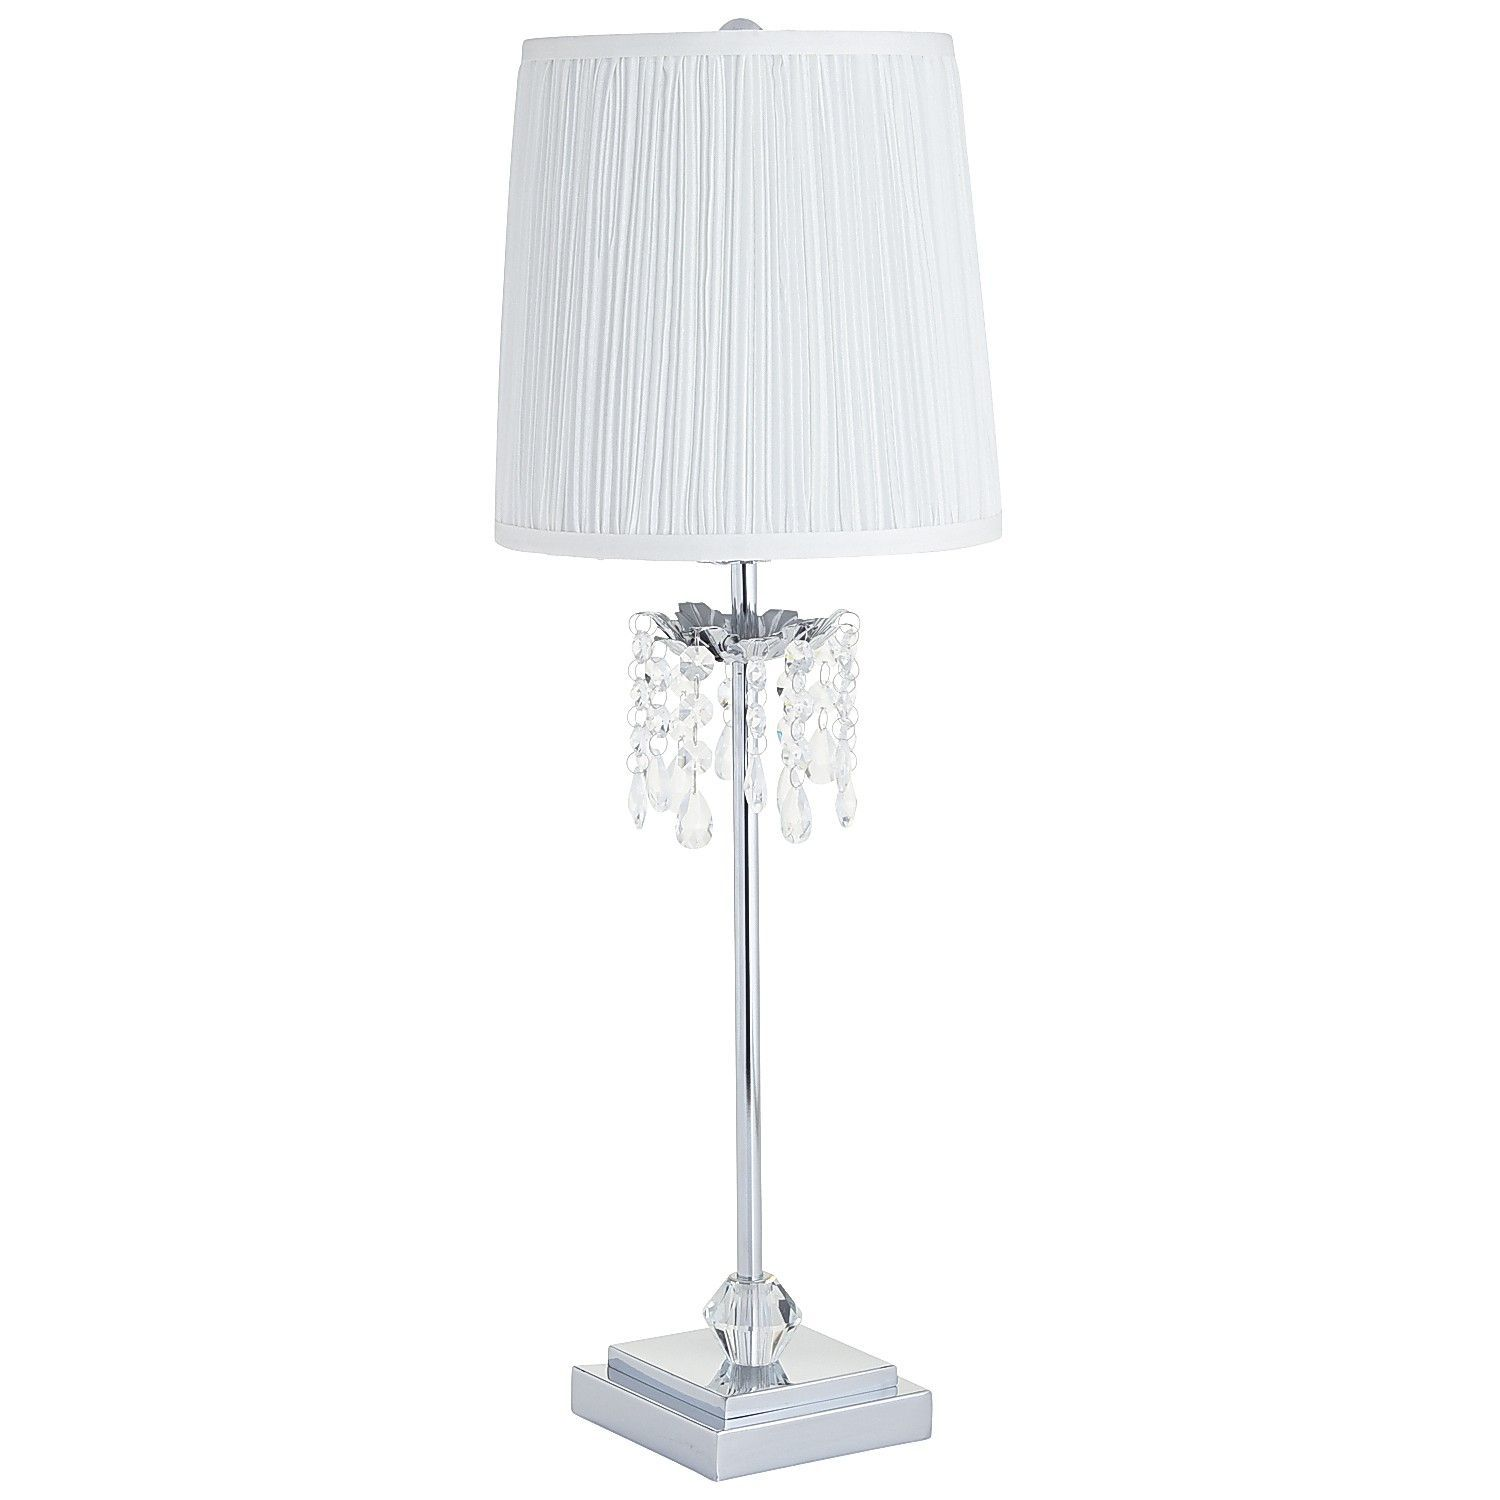 Tina Crystal Bead Accent Lamp Table Lamp Crystal Beads